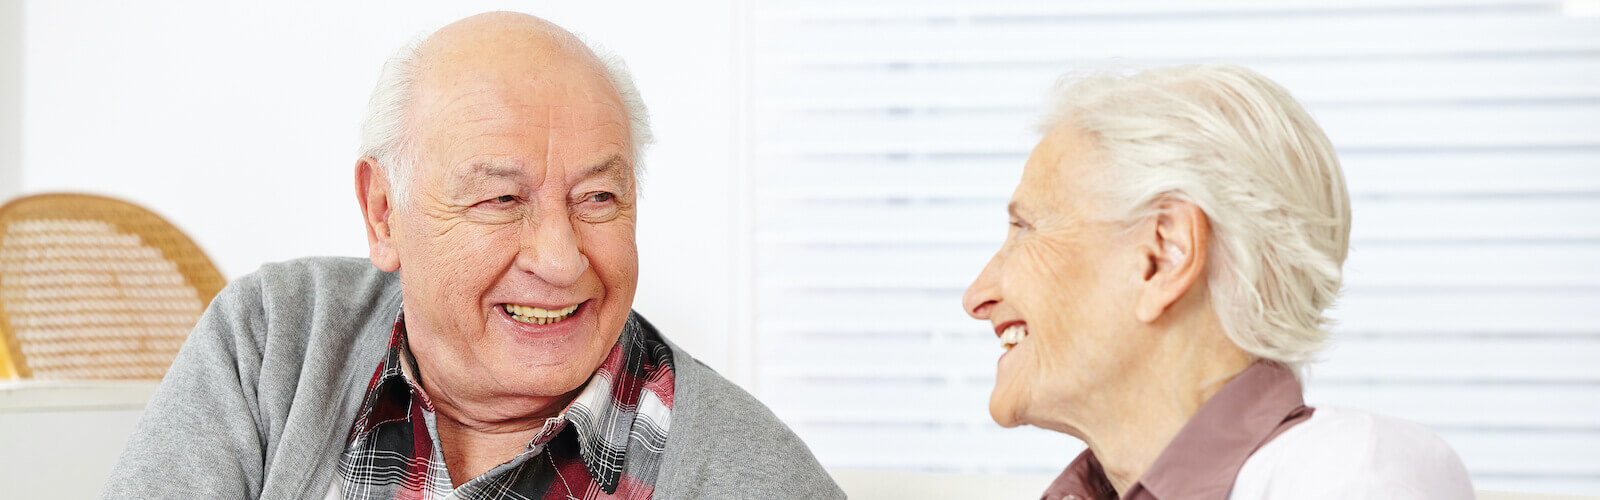 Elderly couple embracing each other.